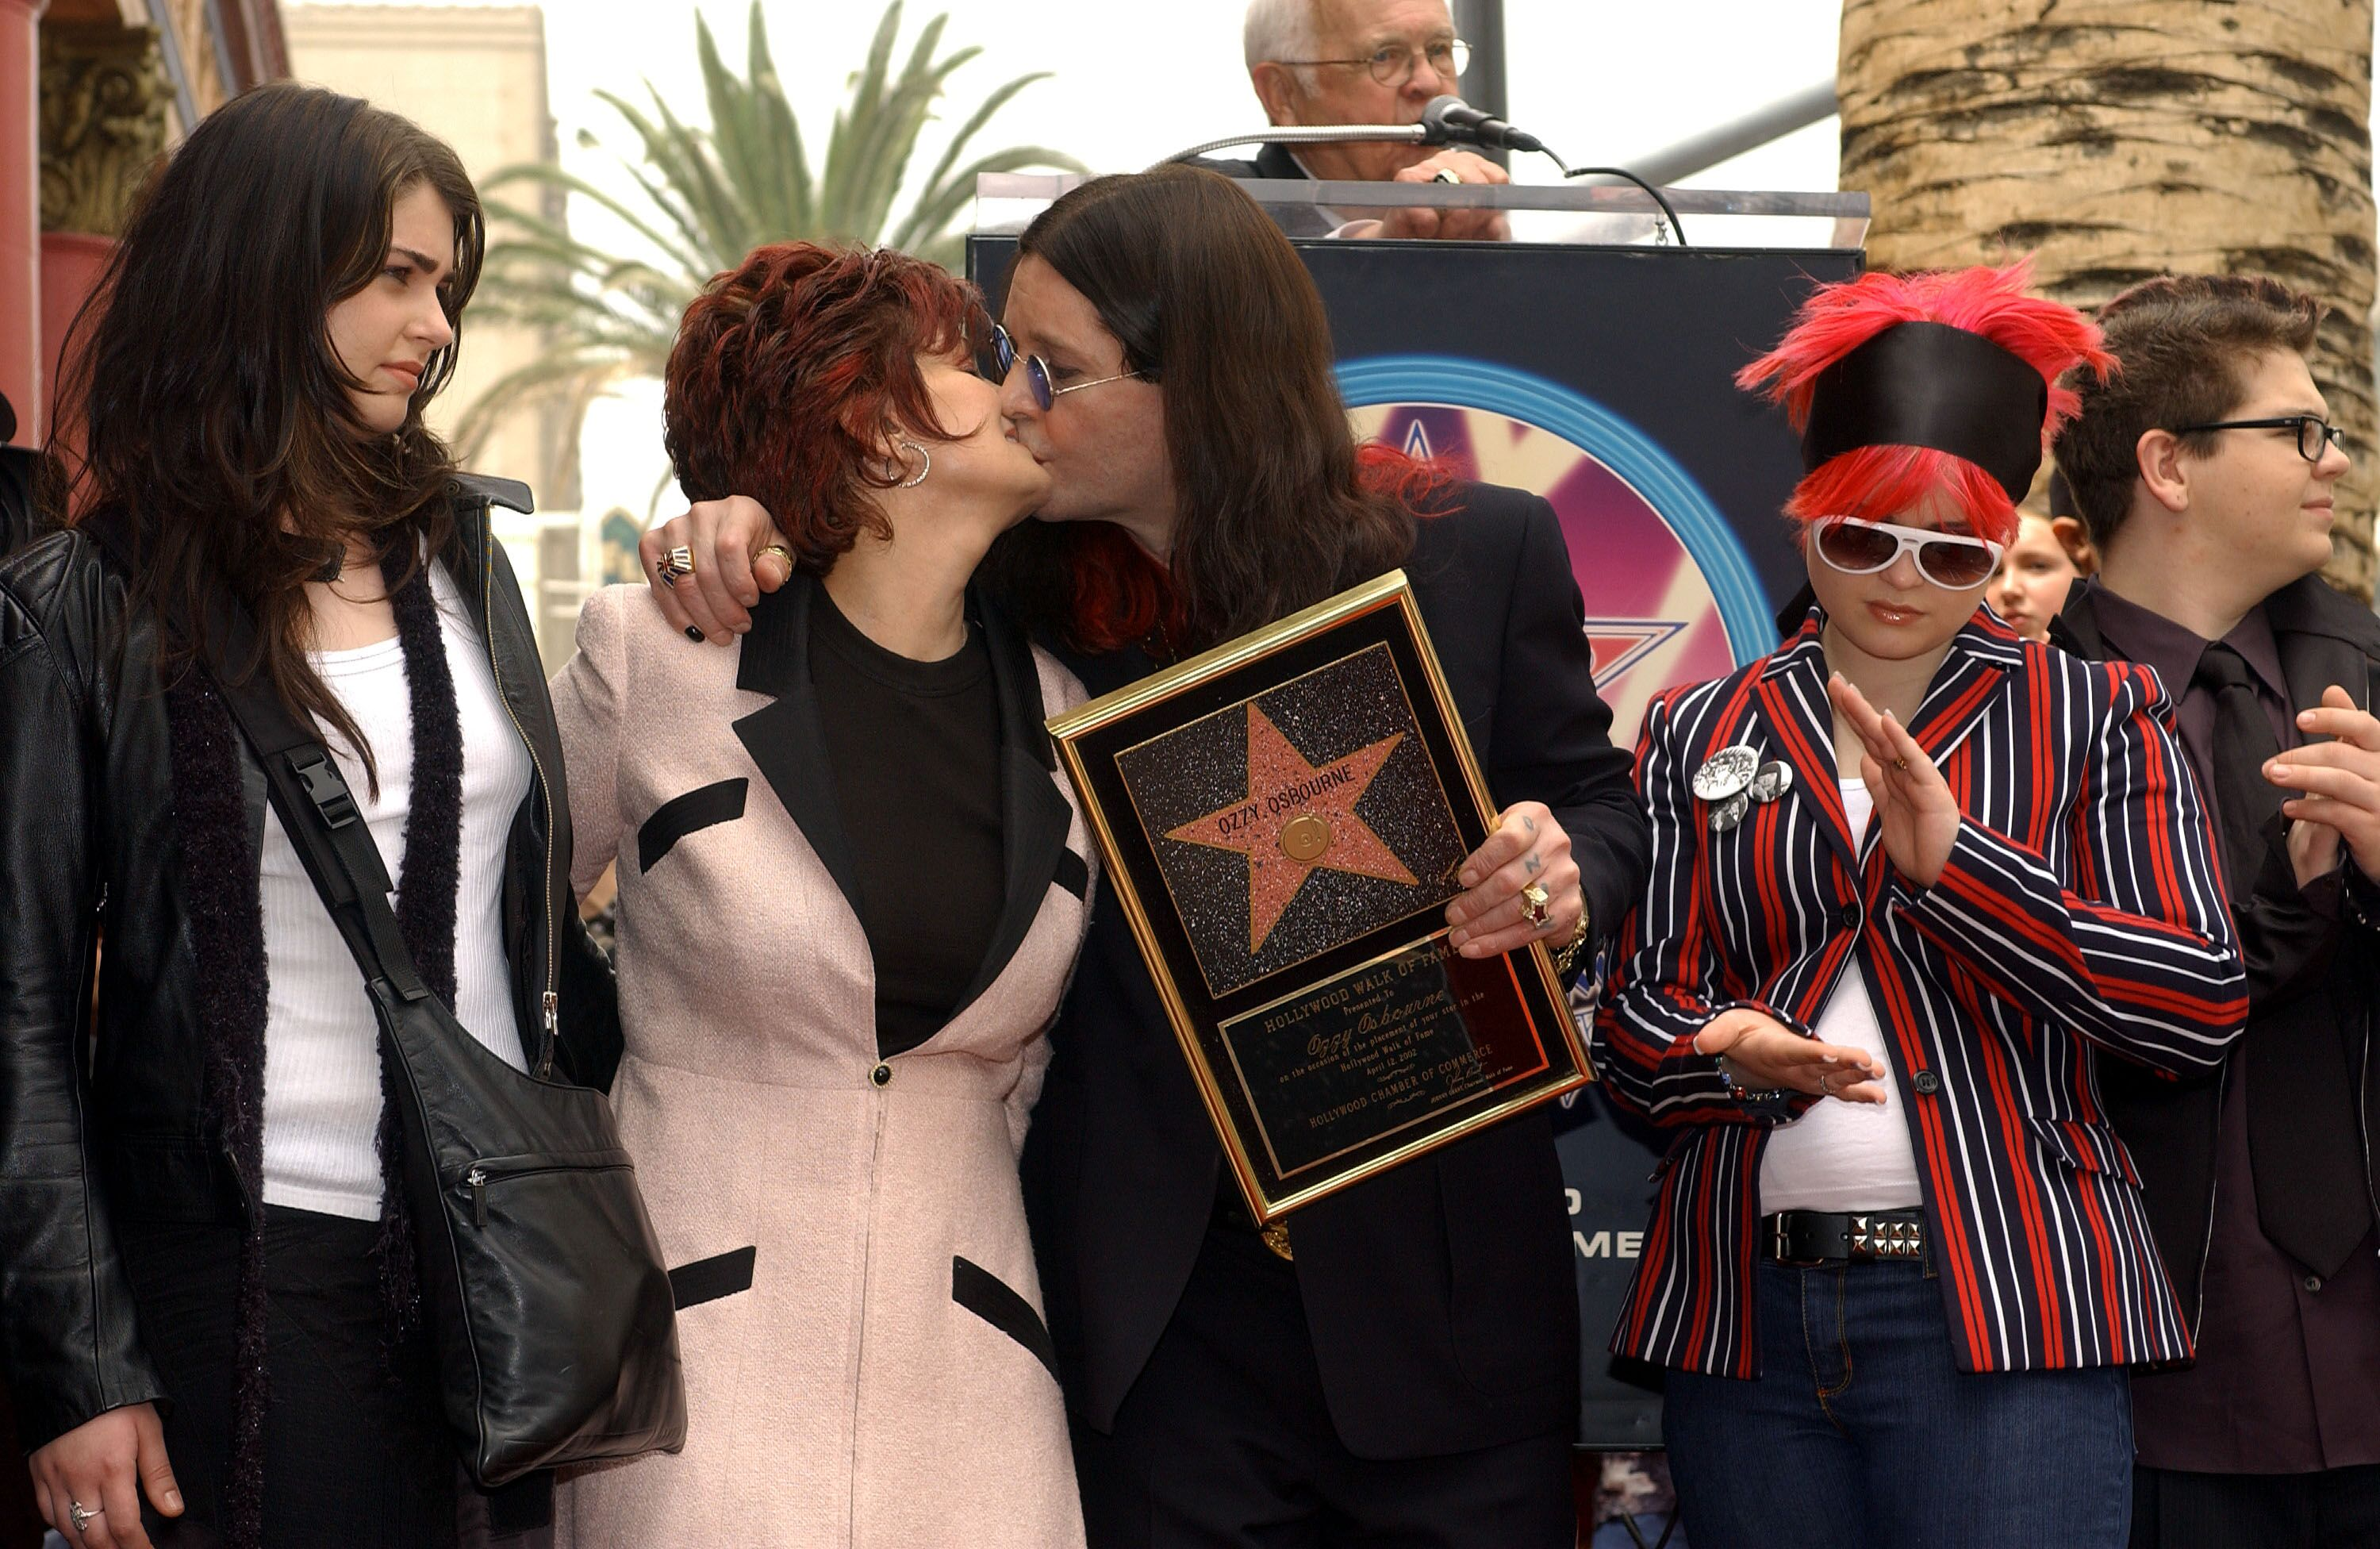 Ozzy Osbourne kisses wife Sharon as daughters Aimee and Kelly look on during the ceremony honoring him with a star on the Hollywood Walk of Fame. | Source: Getty Images